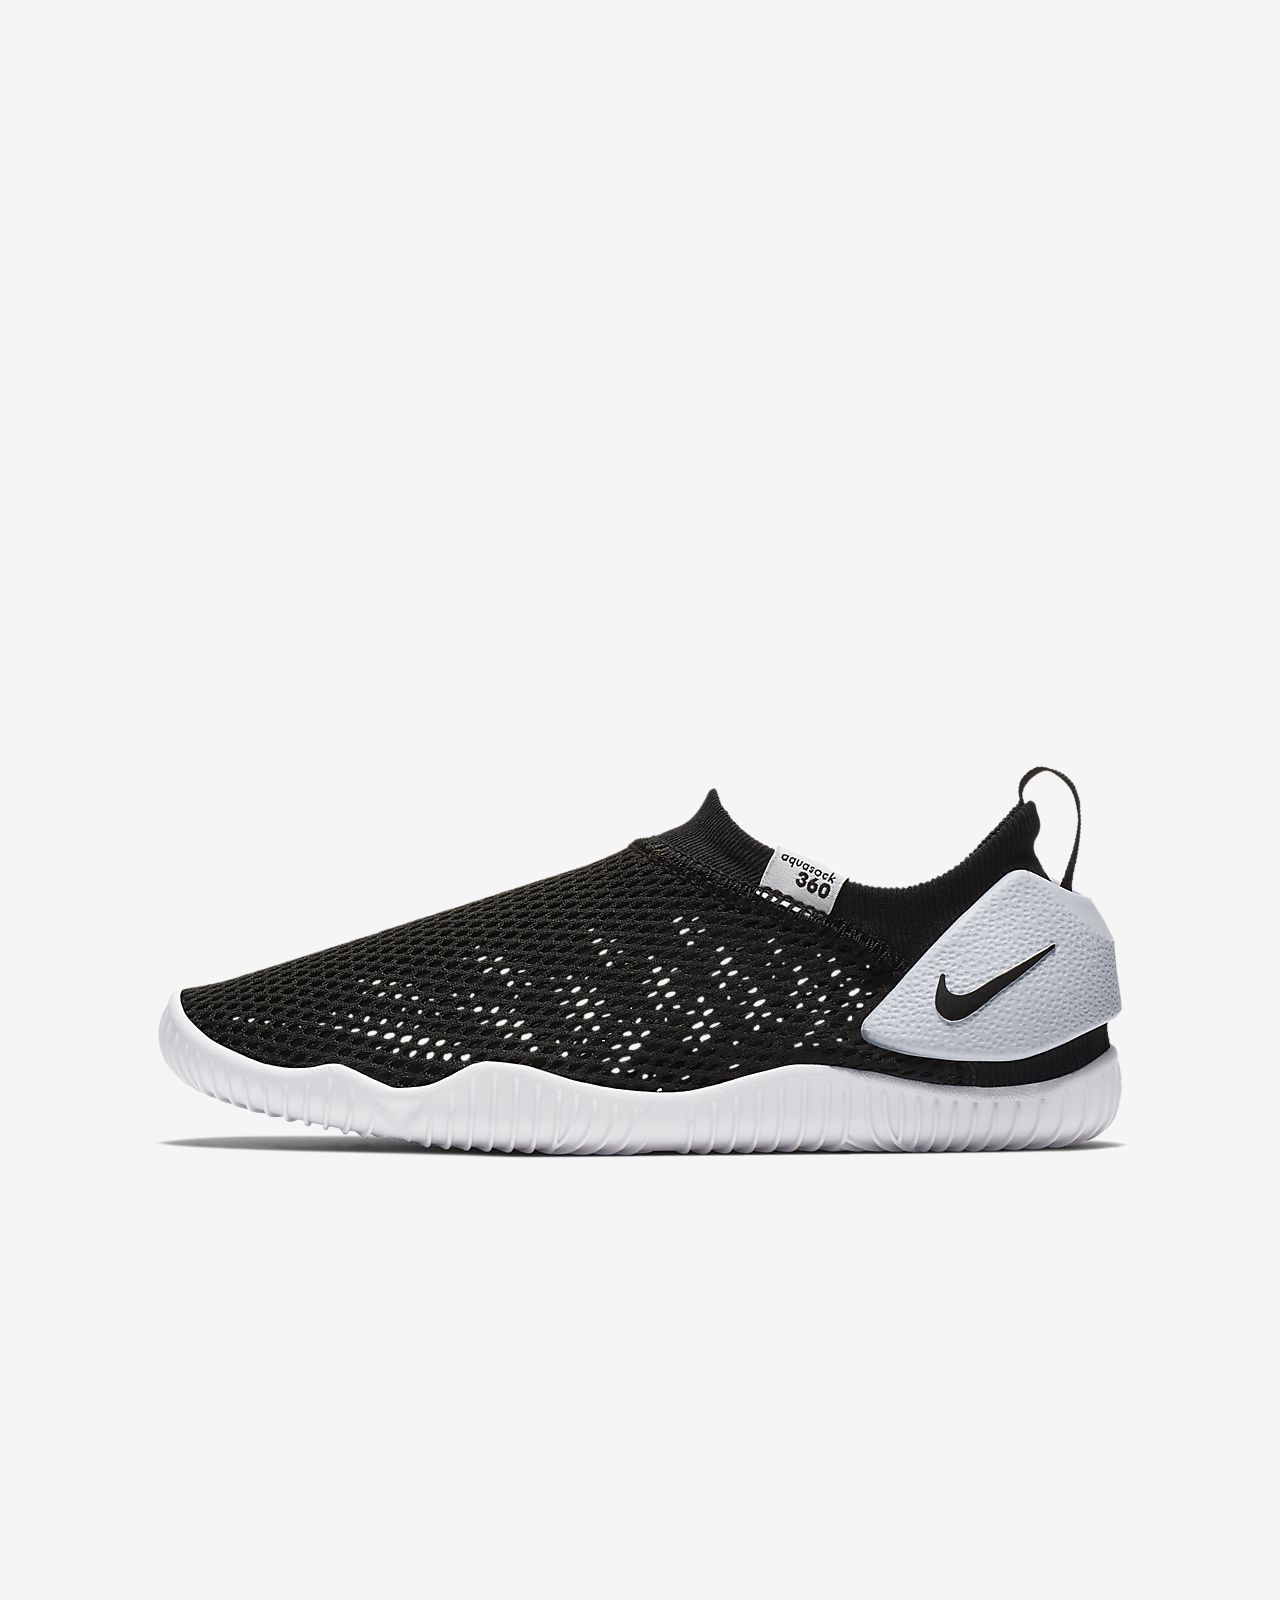 Nike Aqua Sock 360 Younger/Older Kids' Shoe